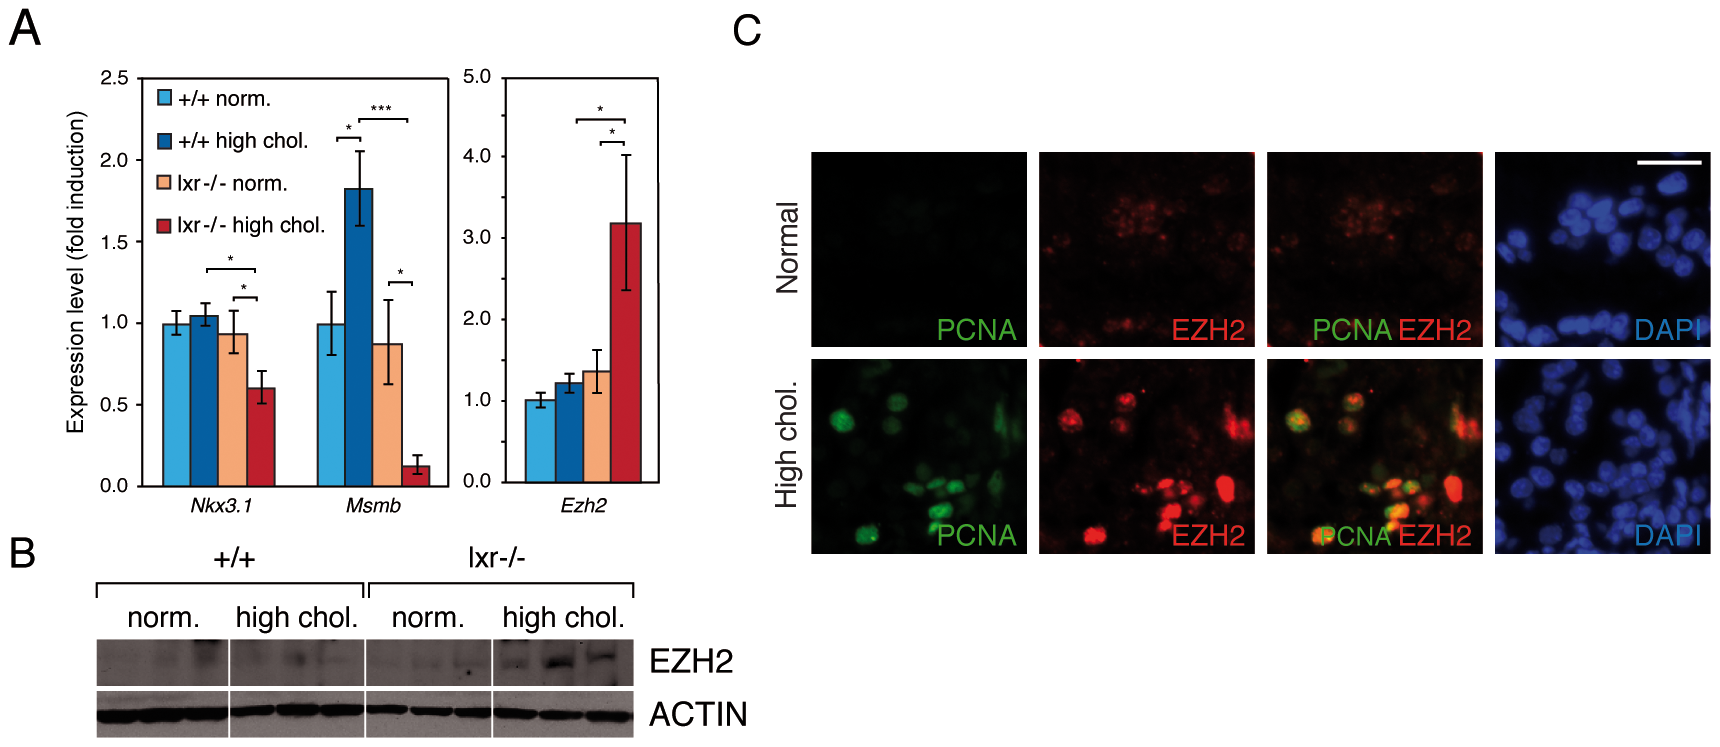 Disruption of cholesterol homeostasis induces the repression of <i>Nkx3.1</i> and <i>Msmb</i> tumor suppressor genes and upregulation of the <i>Ezh2</i> histone methyltransferase gene.